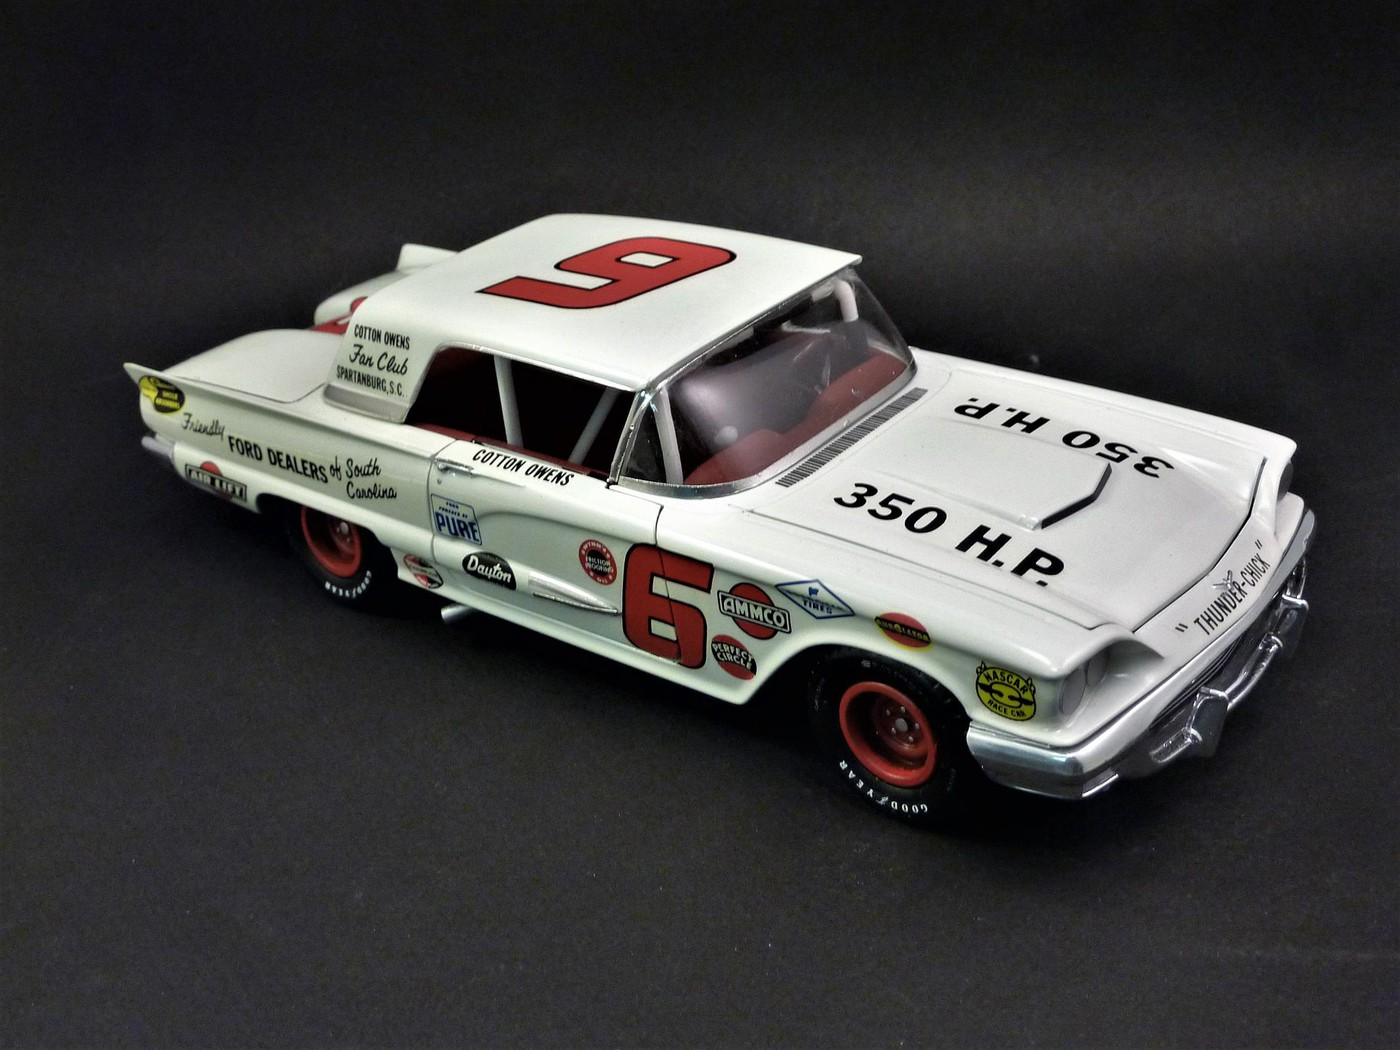 Ford Thunderbird 59 Nascar Cotton Owens terminée - Page 2 Photo17-vi